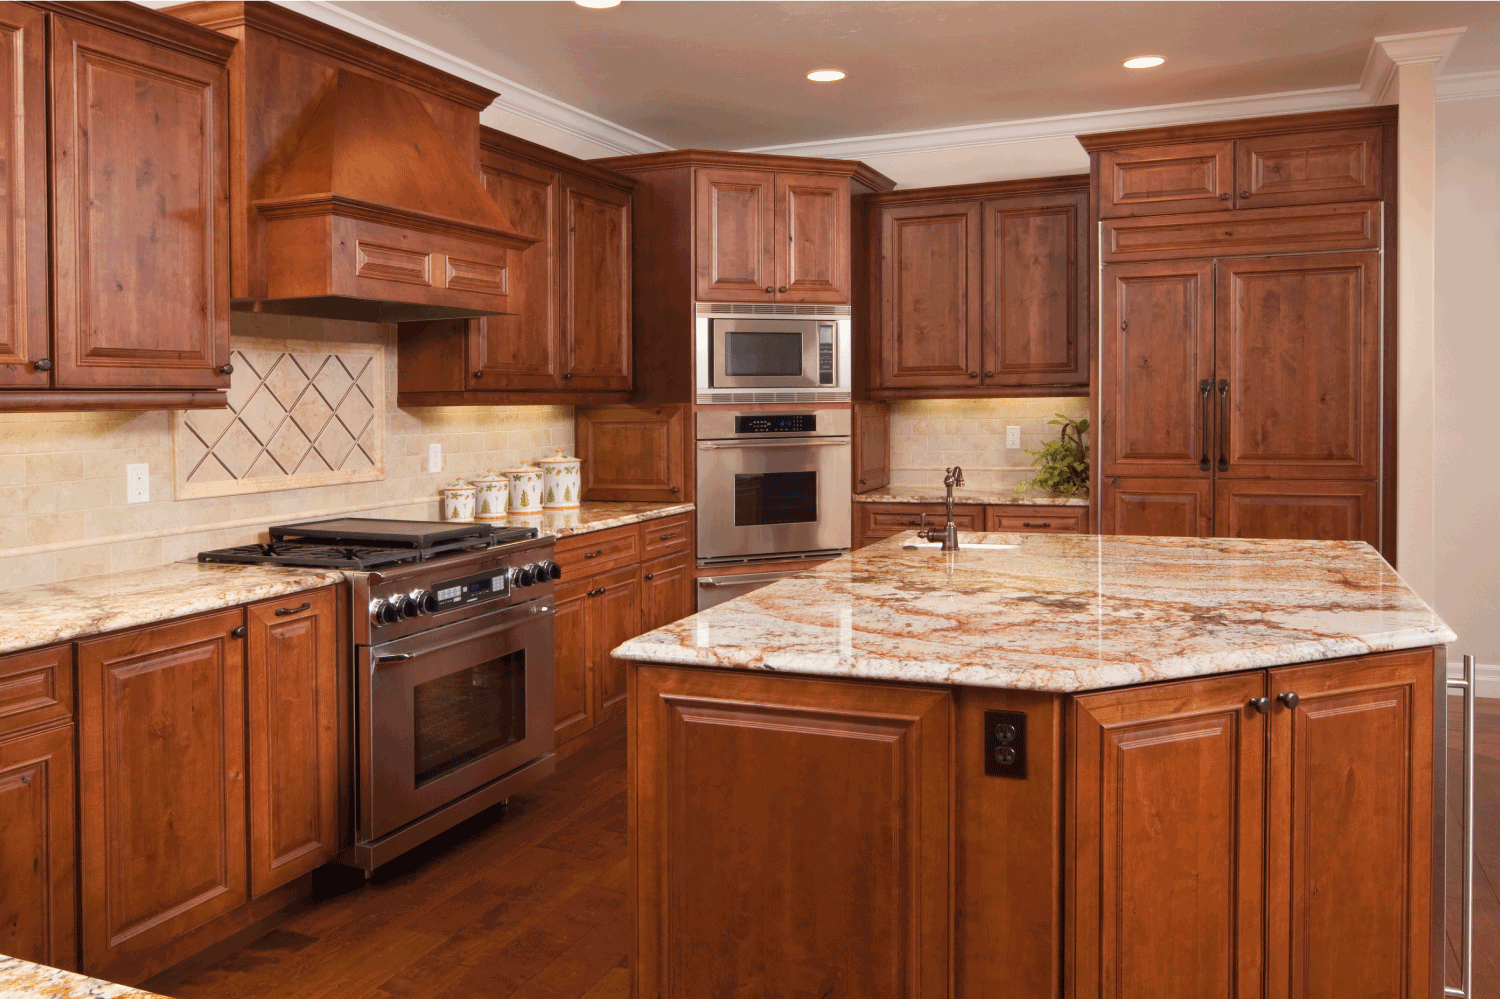 wood and subtle pinks on kitchen cabinets